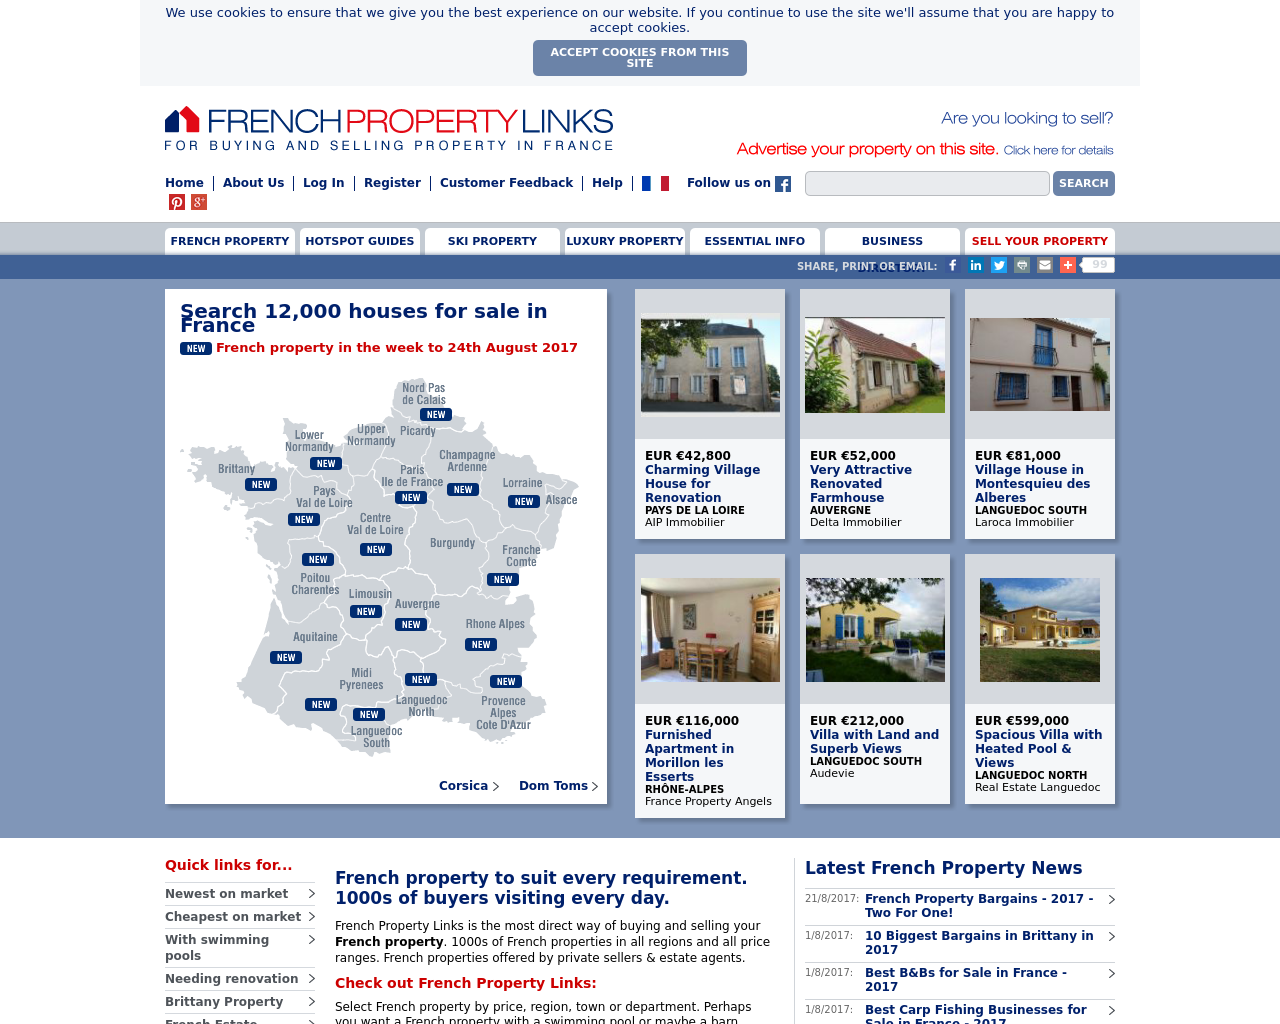 French-Property-Links-Advertising-Reviews-Pricing